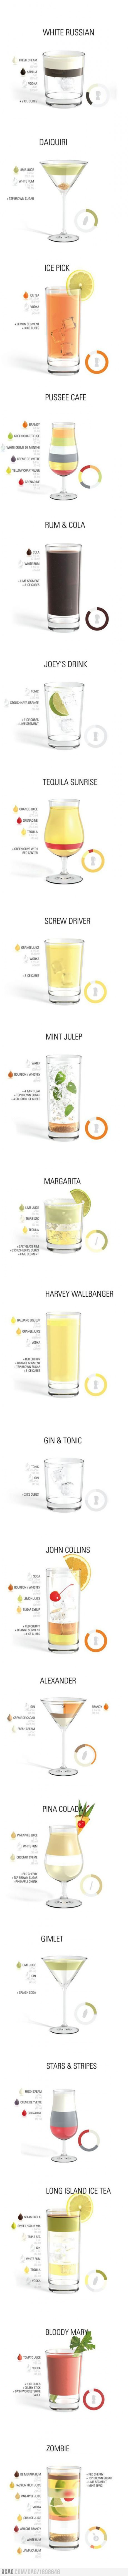 How to Make Typical Drinks...an Infographic